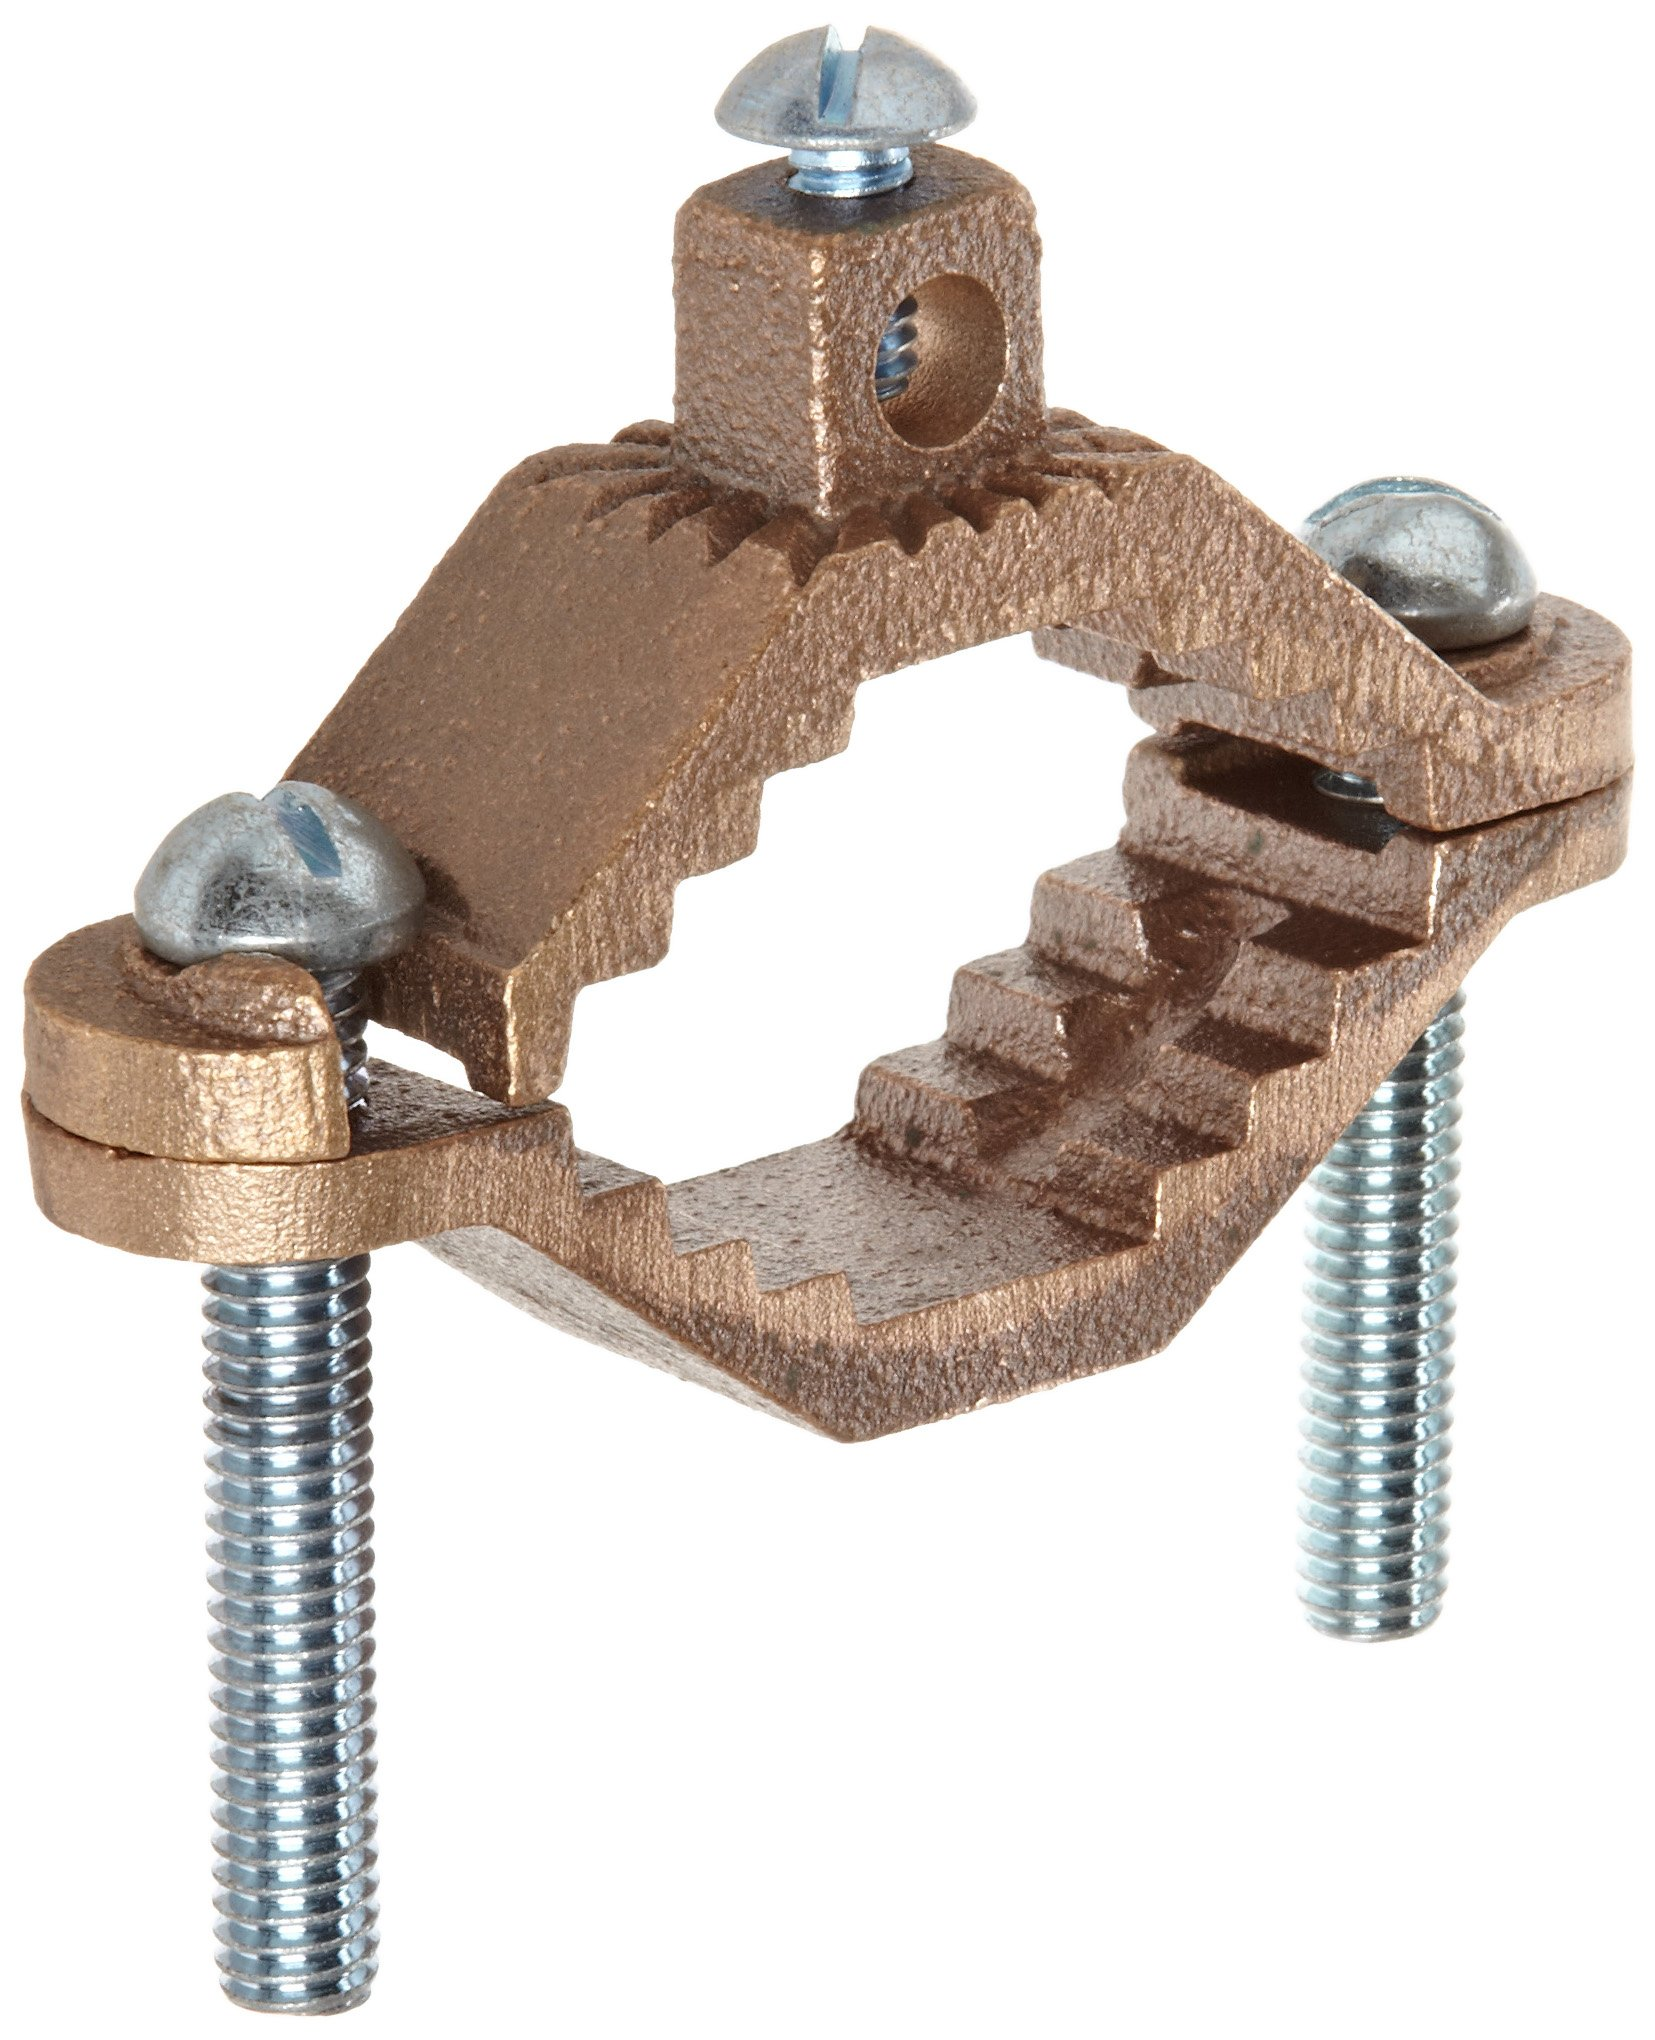 Morris Products 91662 Ground Pipe Clamp, With Adaptor Serrations, 2-10 Wire Range, 1-1/4'' - 2'' Water Pipe Range